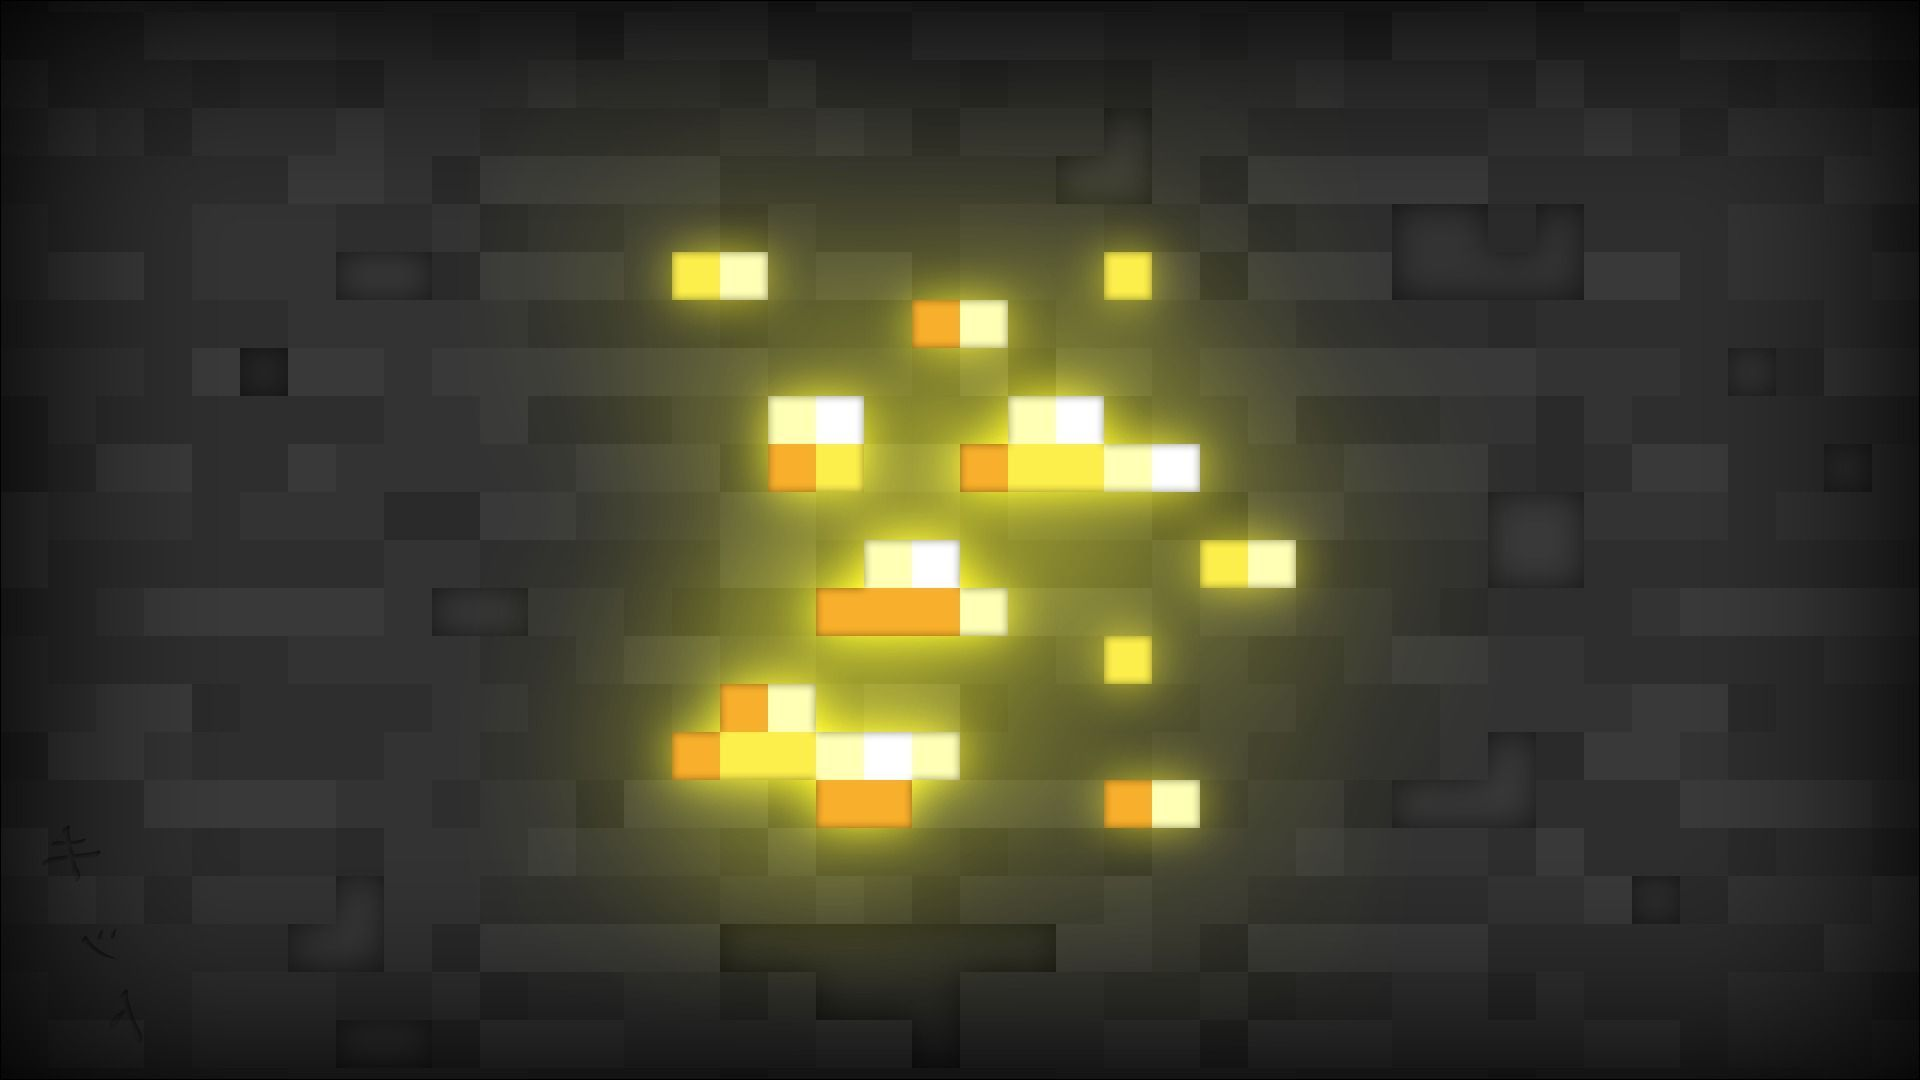 Minecraft Wallpapers Archives Hdwallsource Com HD Wallpapers Download Free Images Wallpaper [1000image.com]